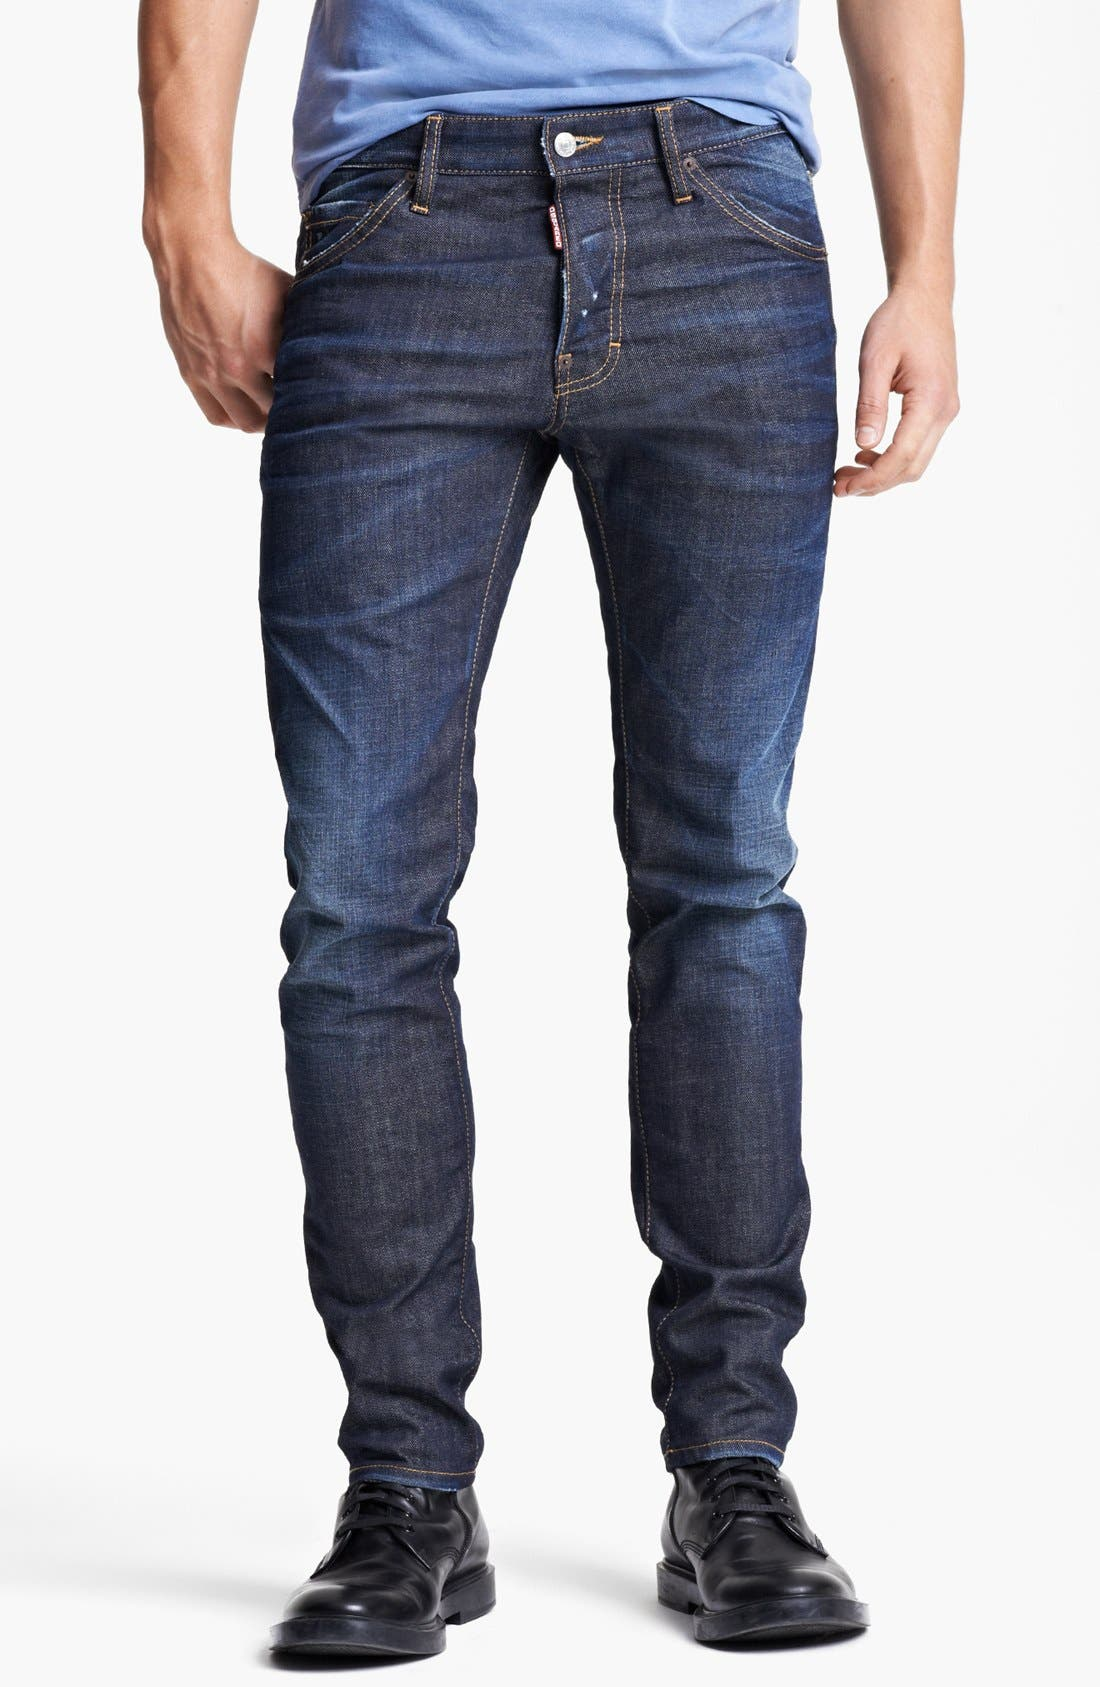 Alternate Image 1 Selected - Dsquared2 'Cool Guy' Skinny Fit Jeans (Blue)